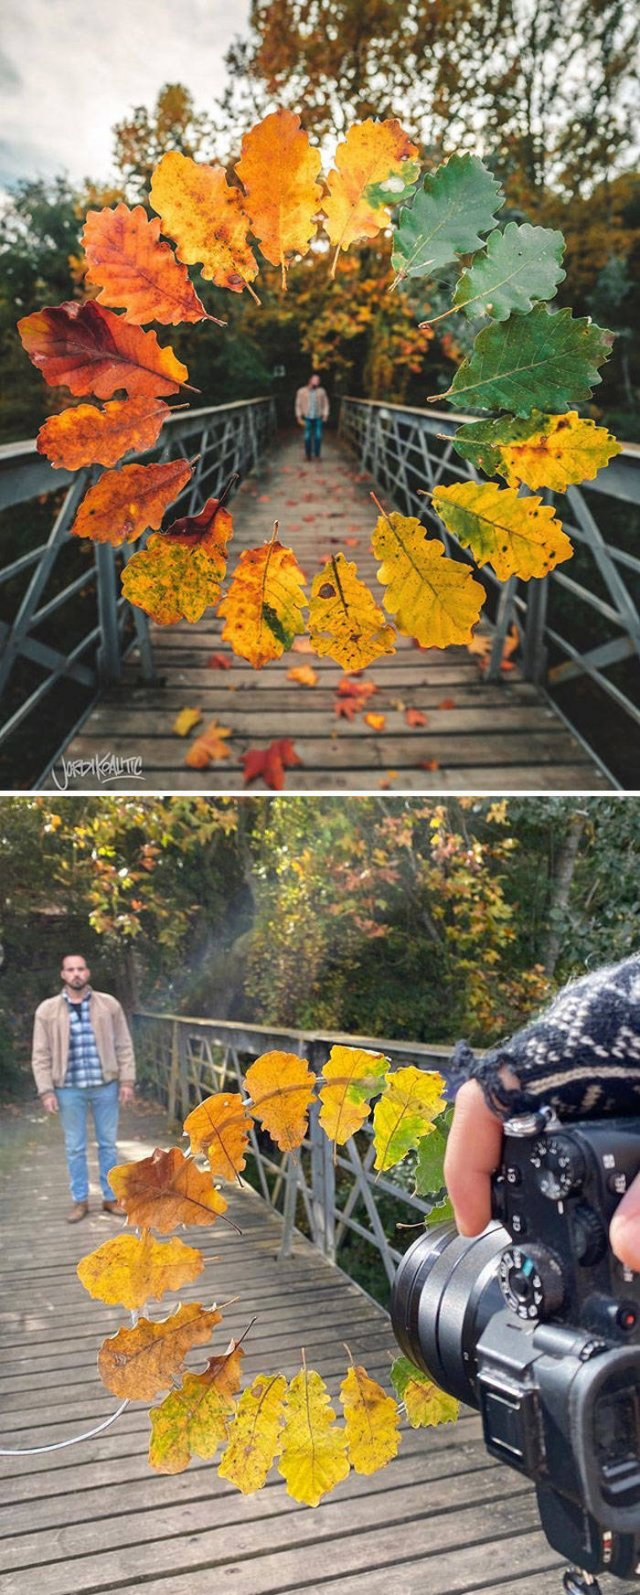 How Great Photos Are Made (29 pics)